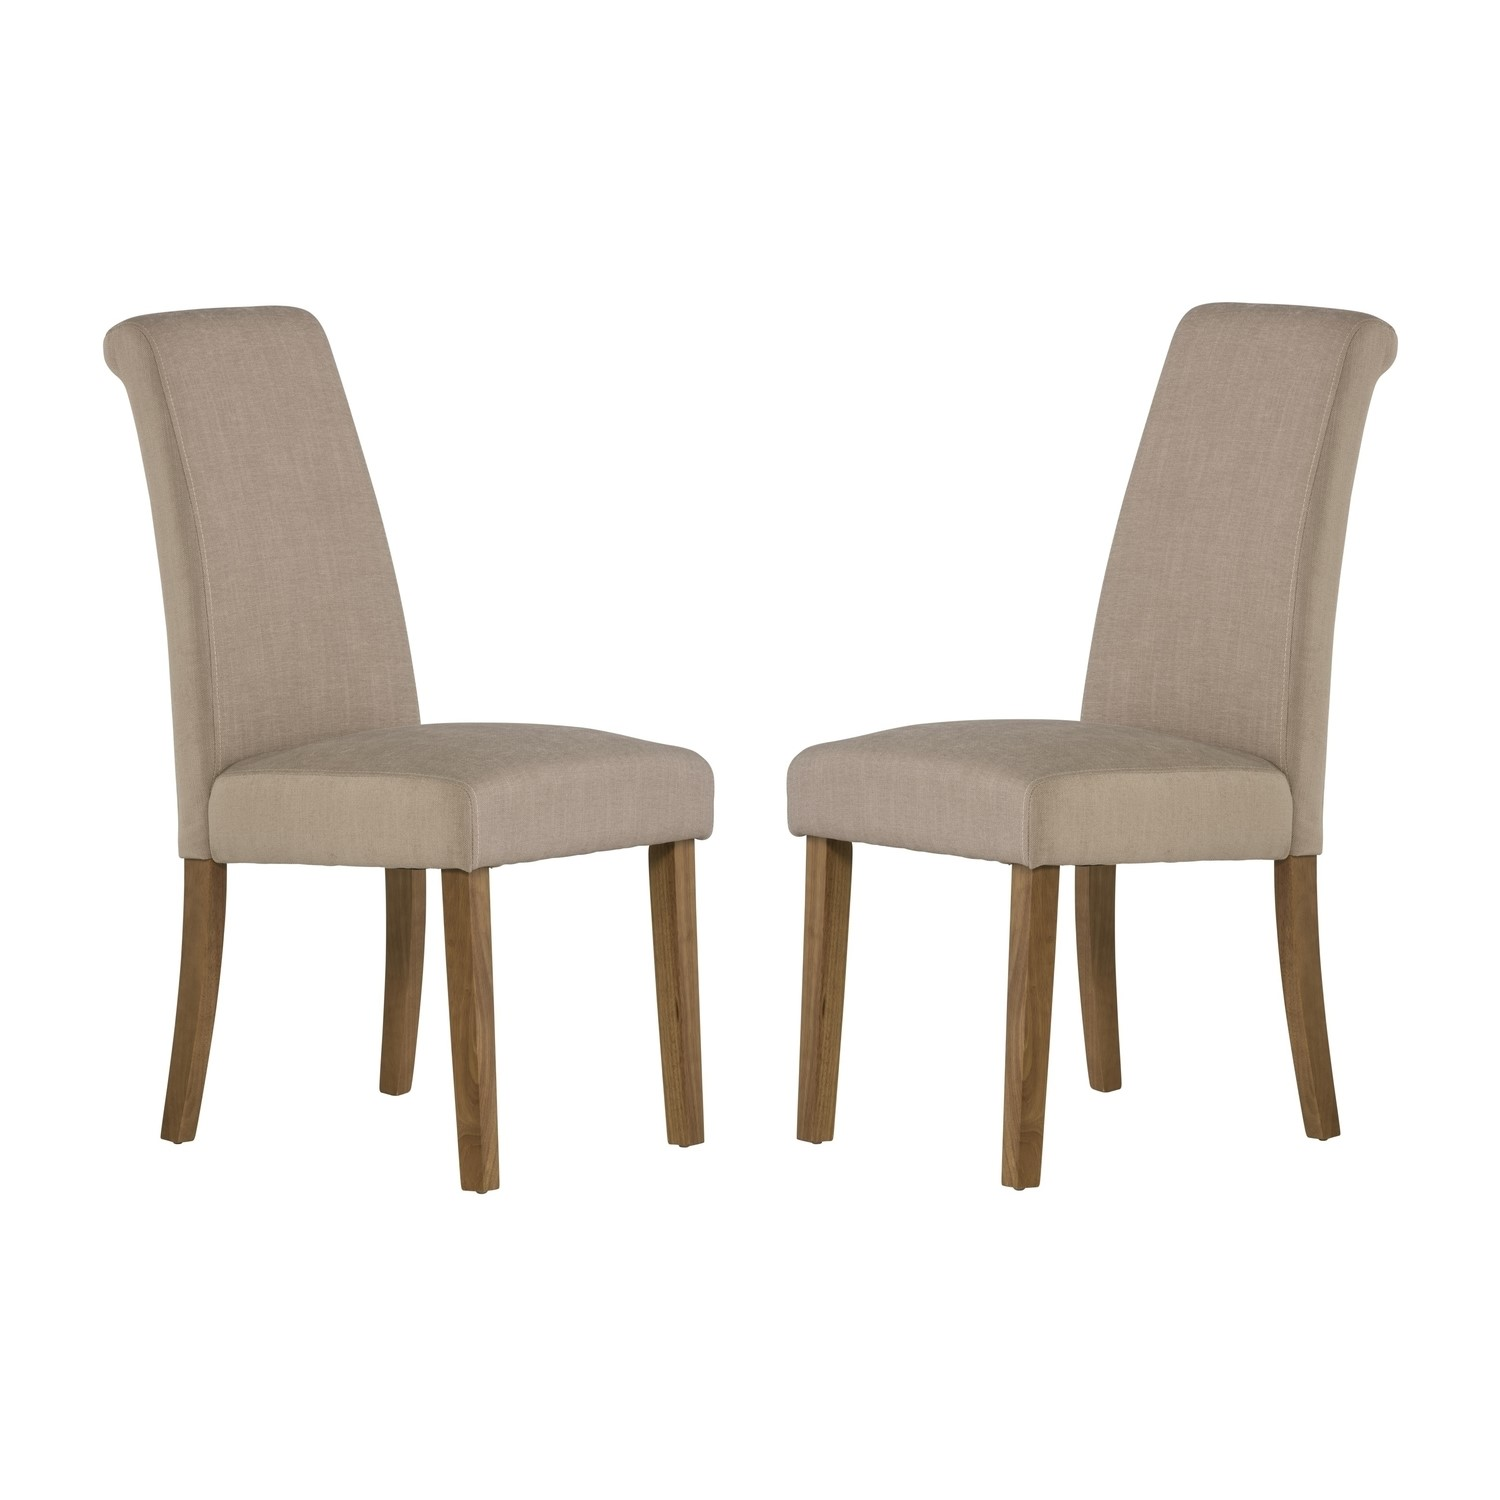 beige dining chairs oxo sprout high chair reviews grade a1 tuscany pair of in fabric furniture123